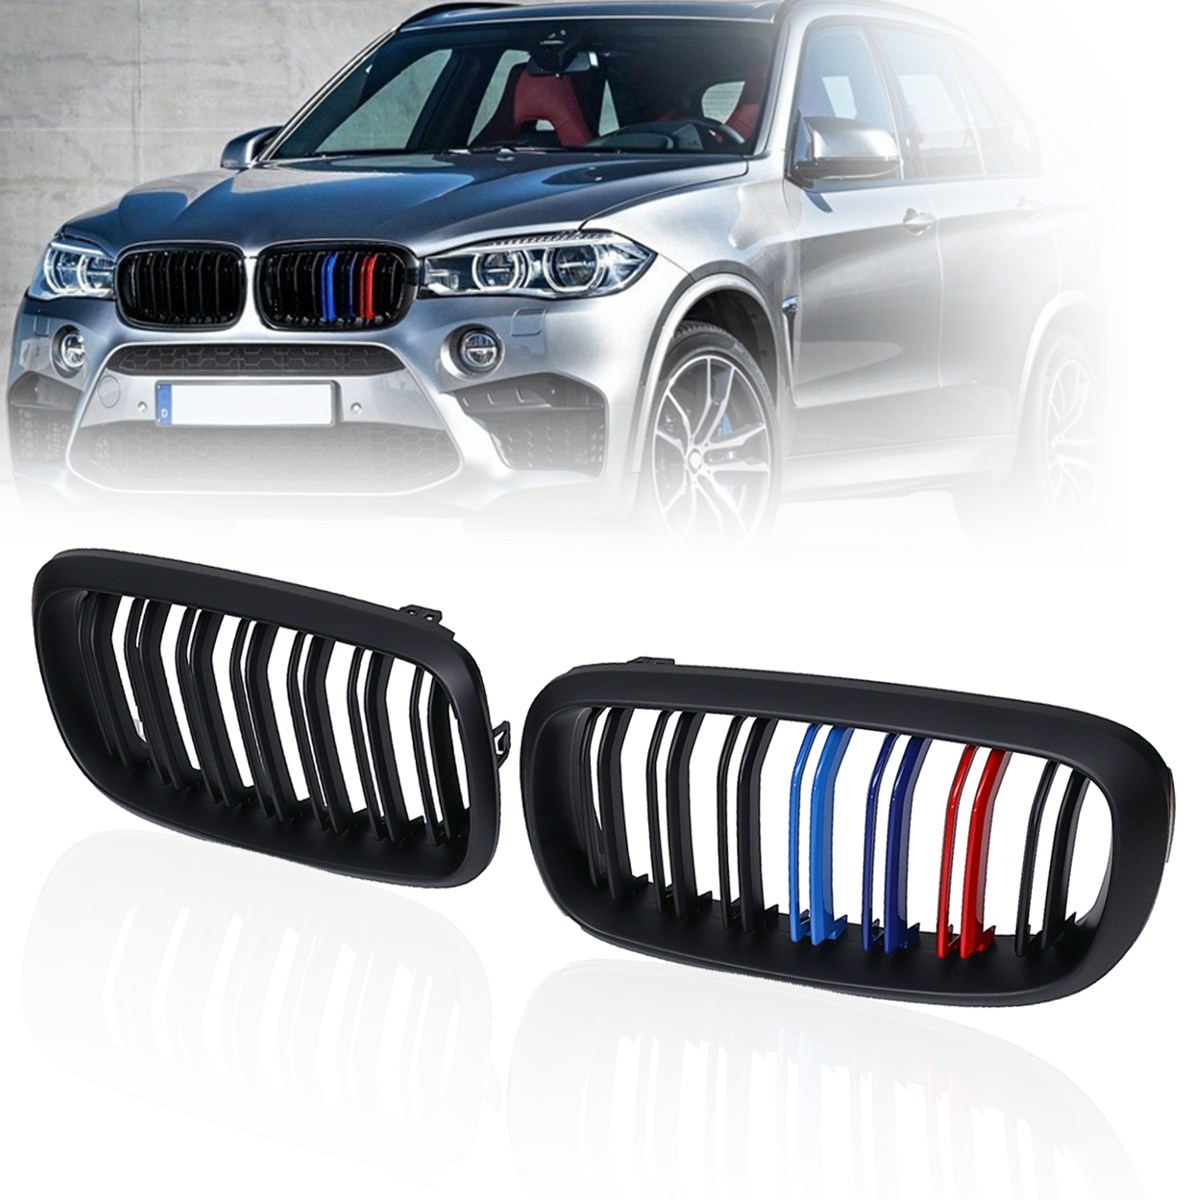 #28-F15MFG3B Pair Matte Gloss Black M Color Front Double Slat Kidney Grille For BMW F86 F15 F16 X5 X6 X5M F85 X6M F86 2016 2017 x5 x6 m performance sport design m color front grill dual slat kidney custom auto grille fit for bmw 2015 2016 f15 f16 suv